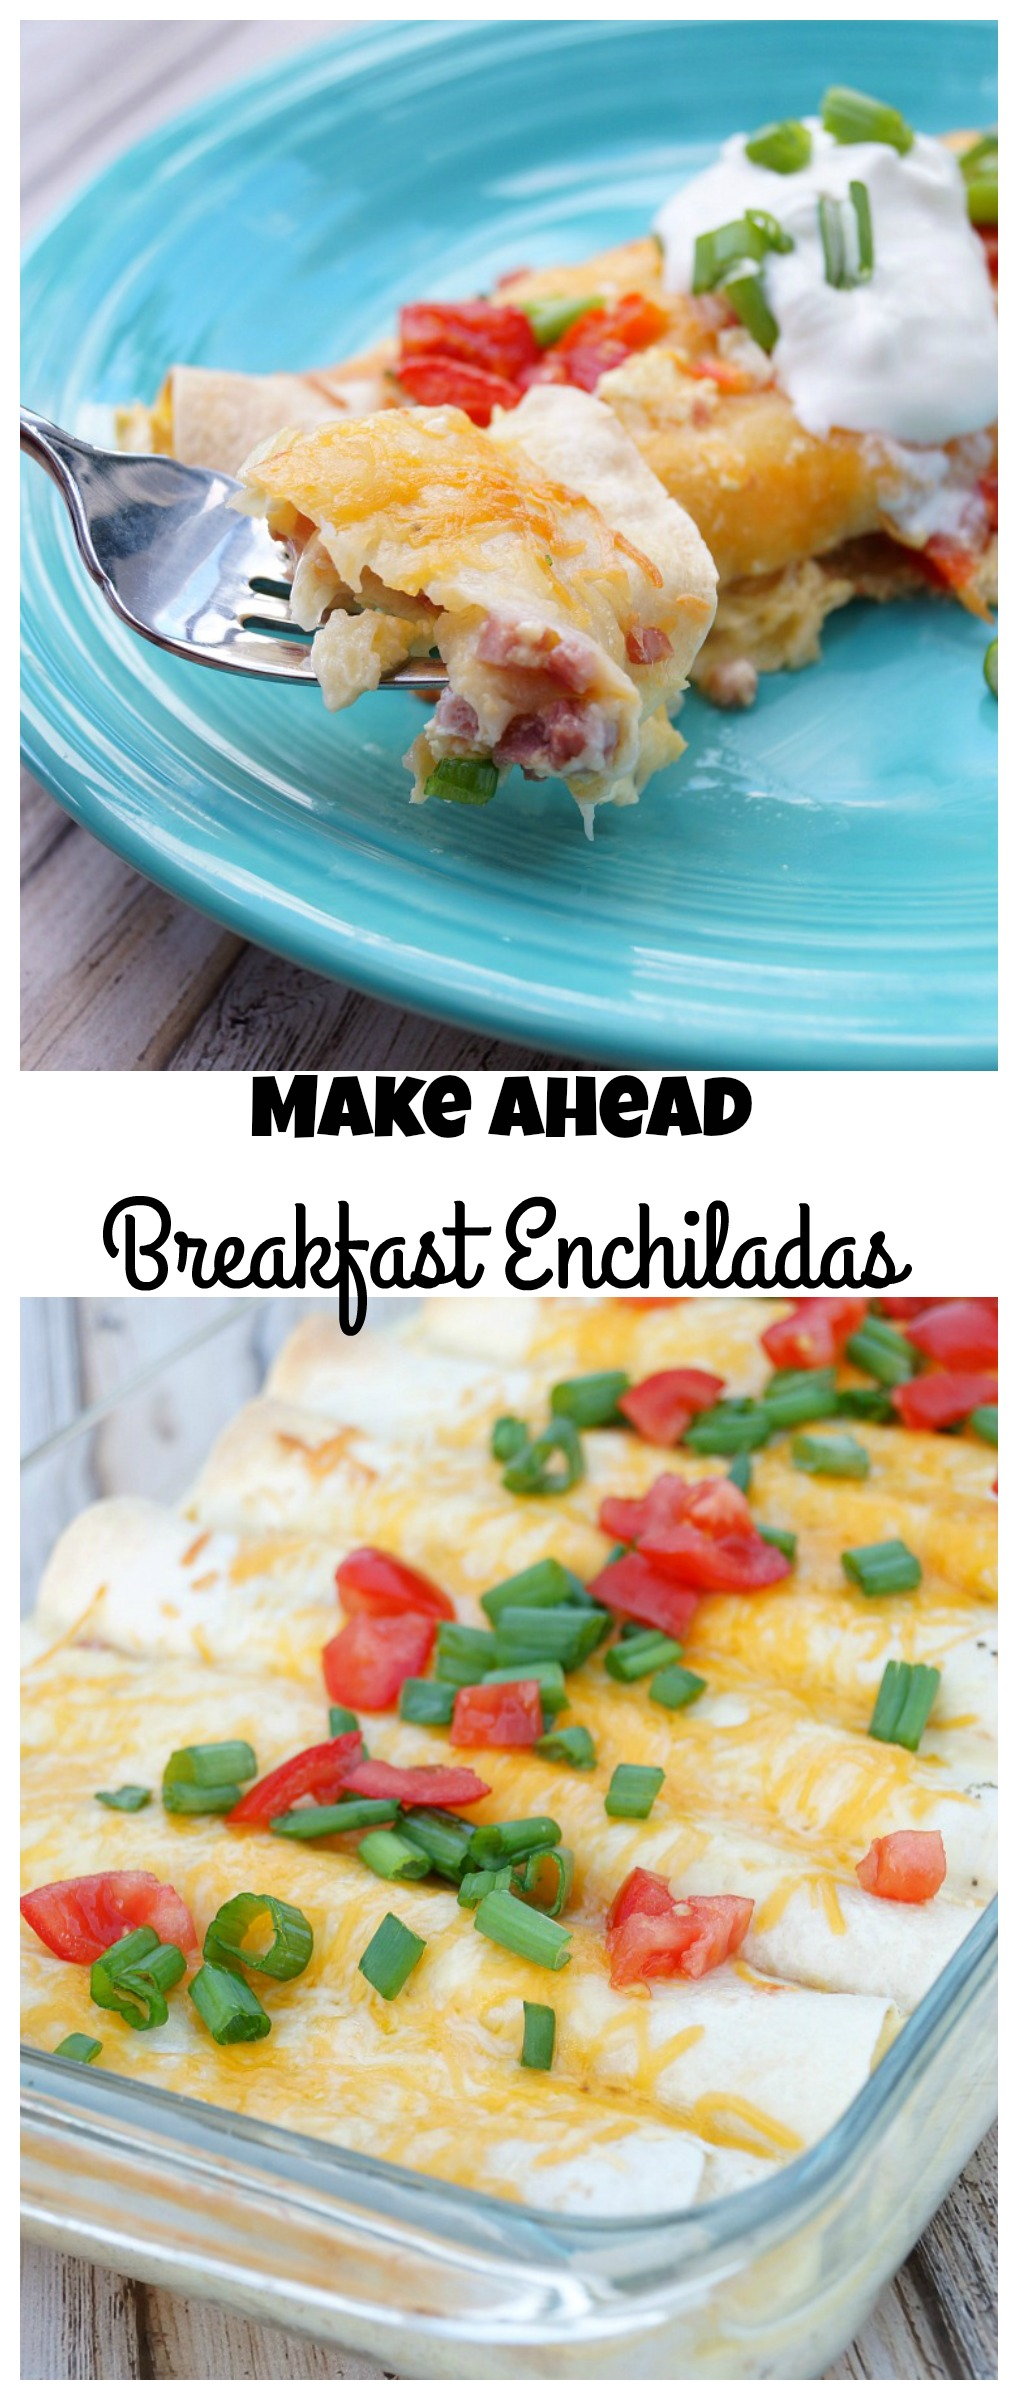 Make Ahead Breakfast Enchiladas, perfect for brunch or any holiday morning!